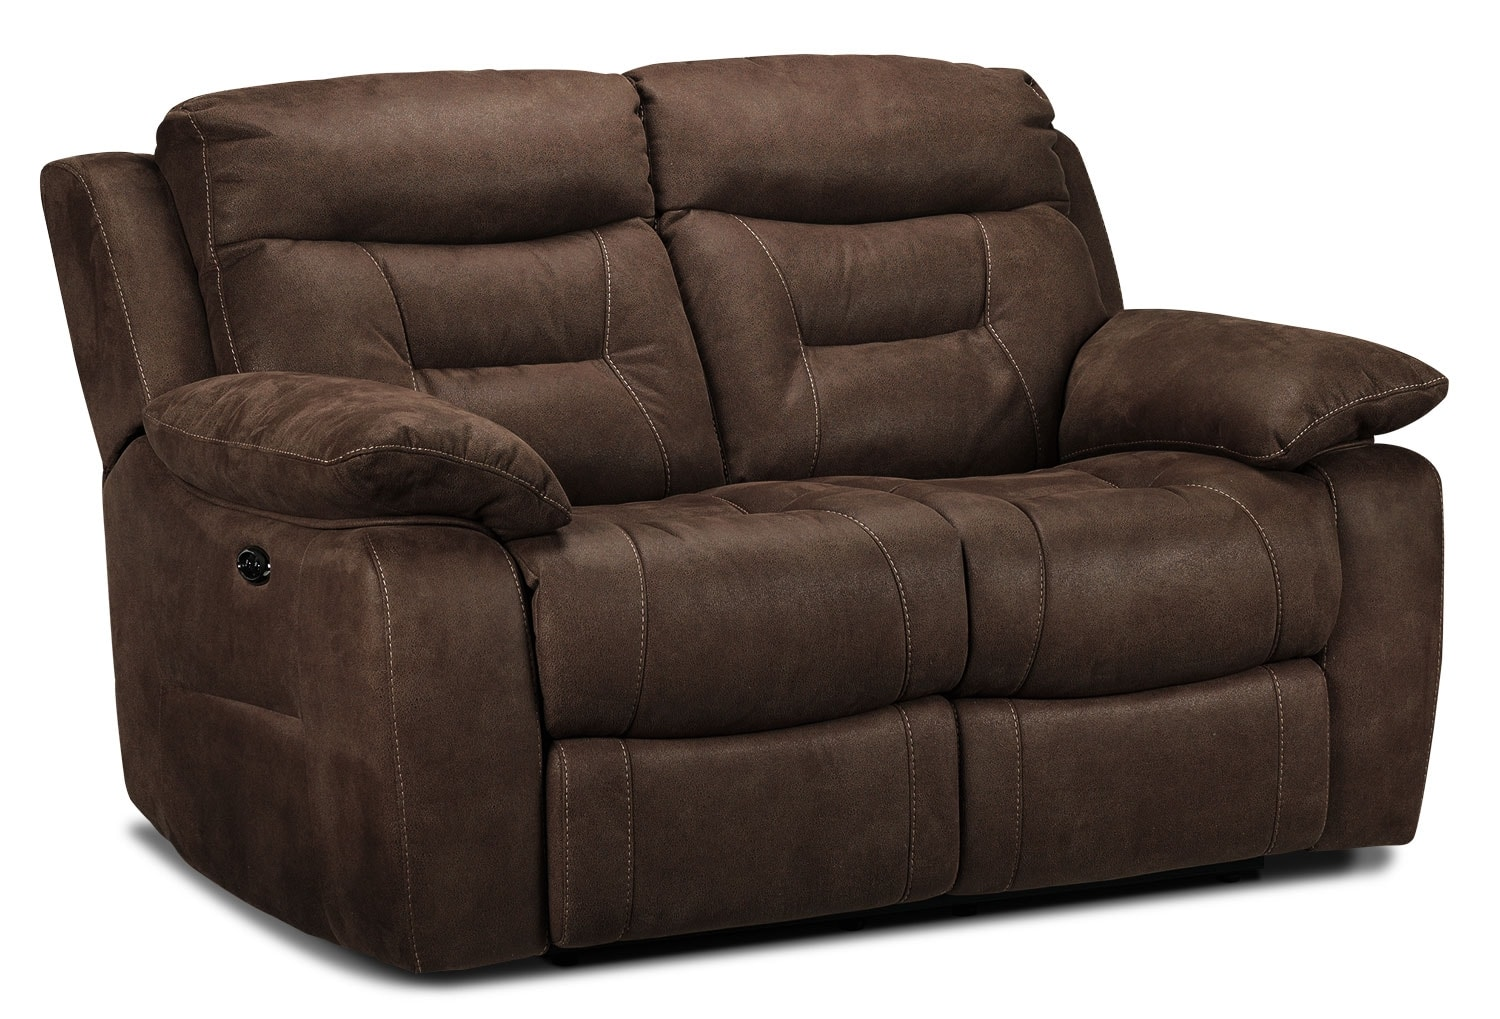 Living Room Furniture - Collins Power Reclining Loveseat - Walnut